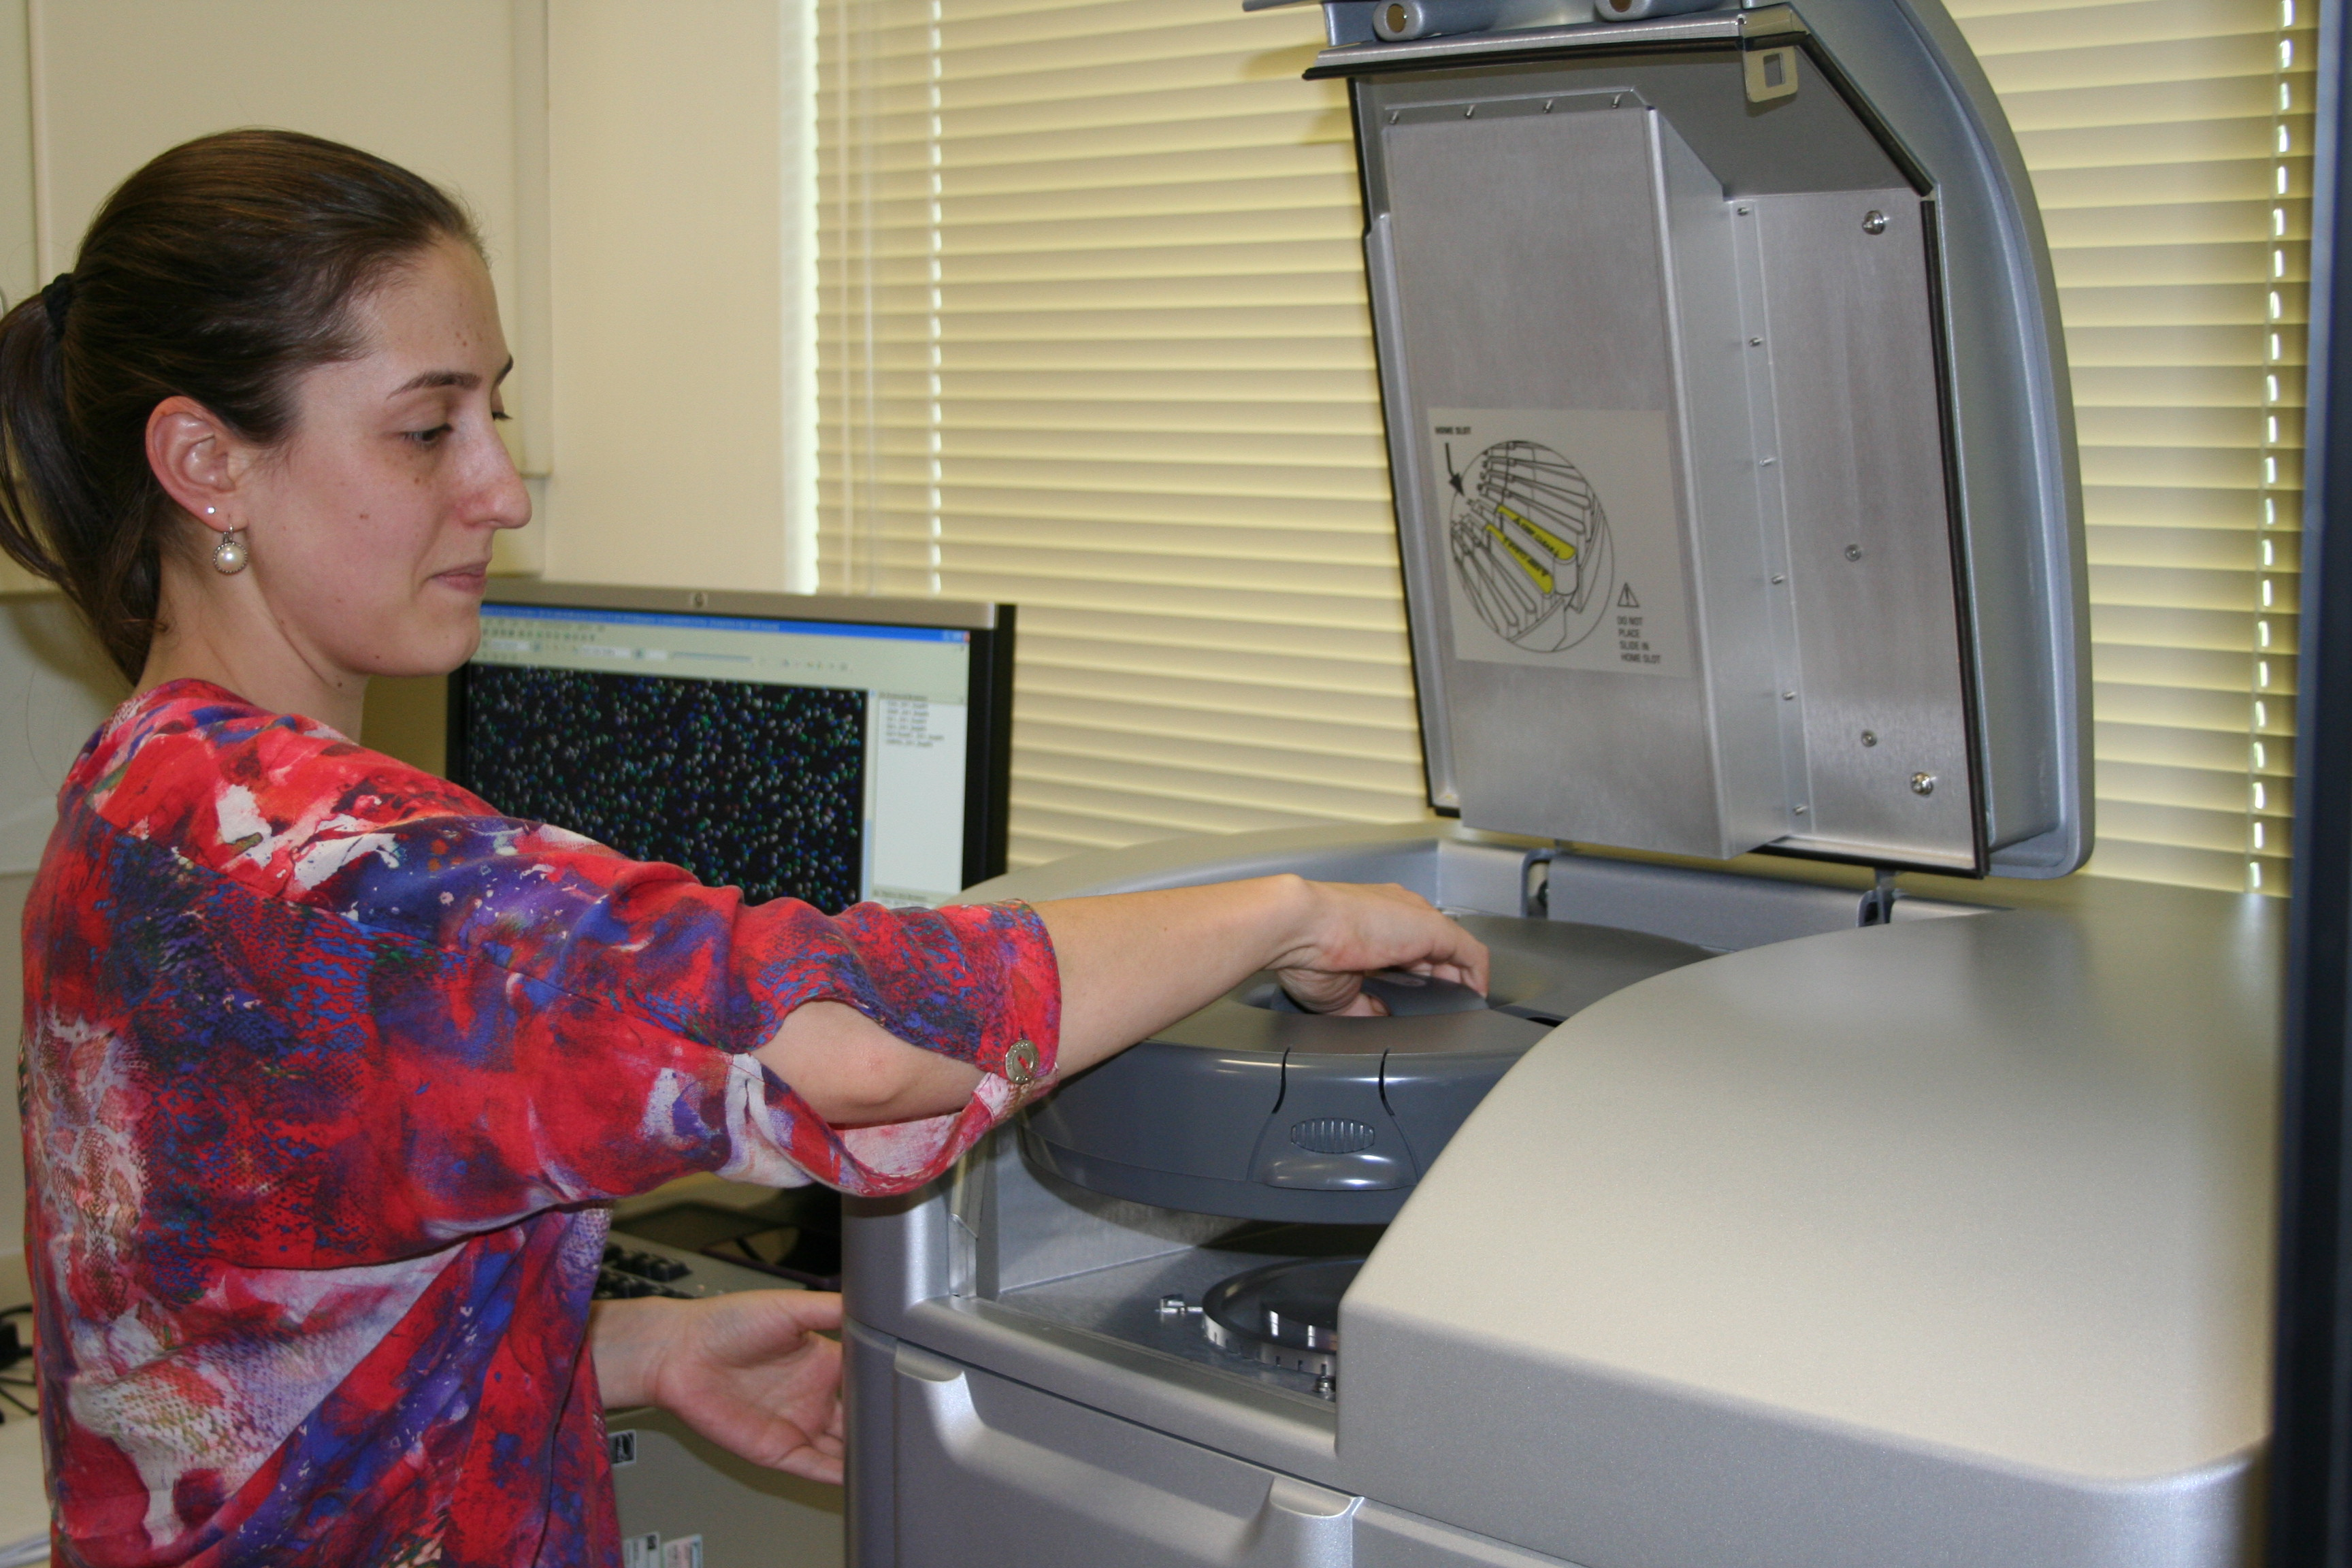 Nicole Pezzi operating an Agilent DNA Microarray Scanner